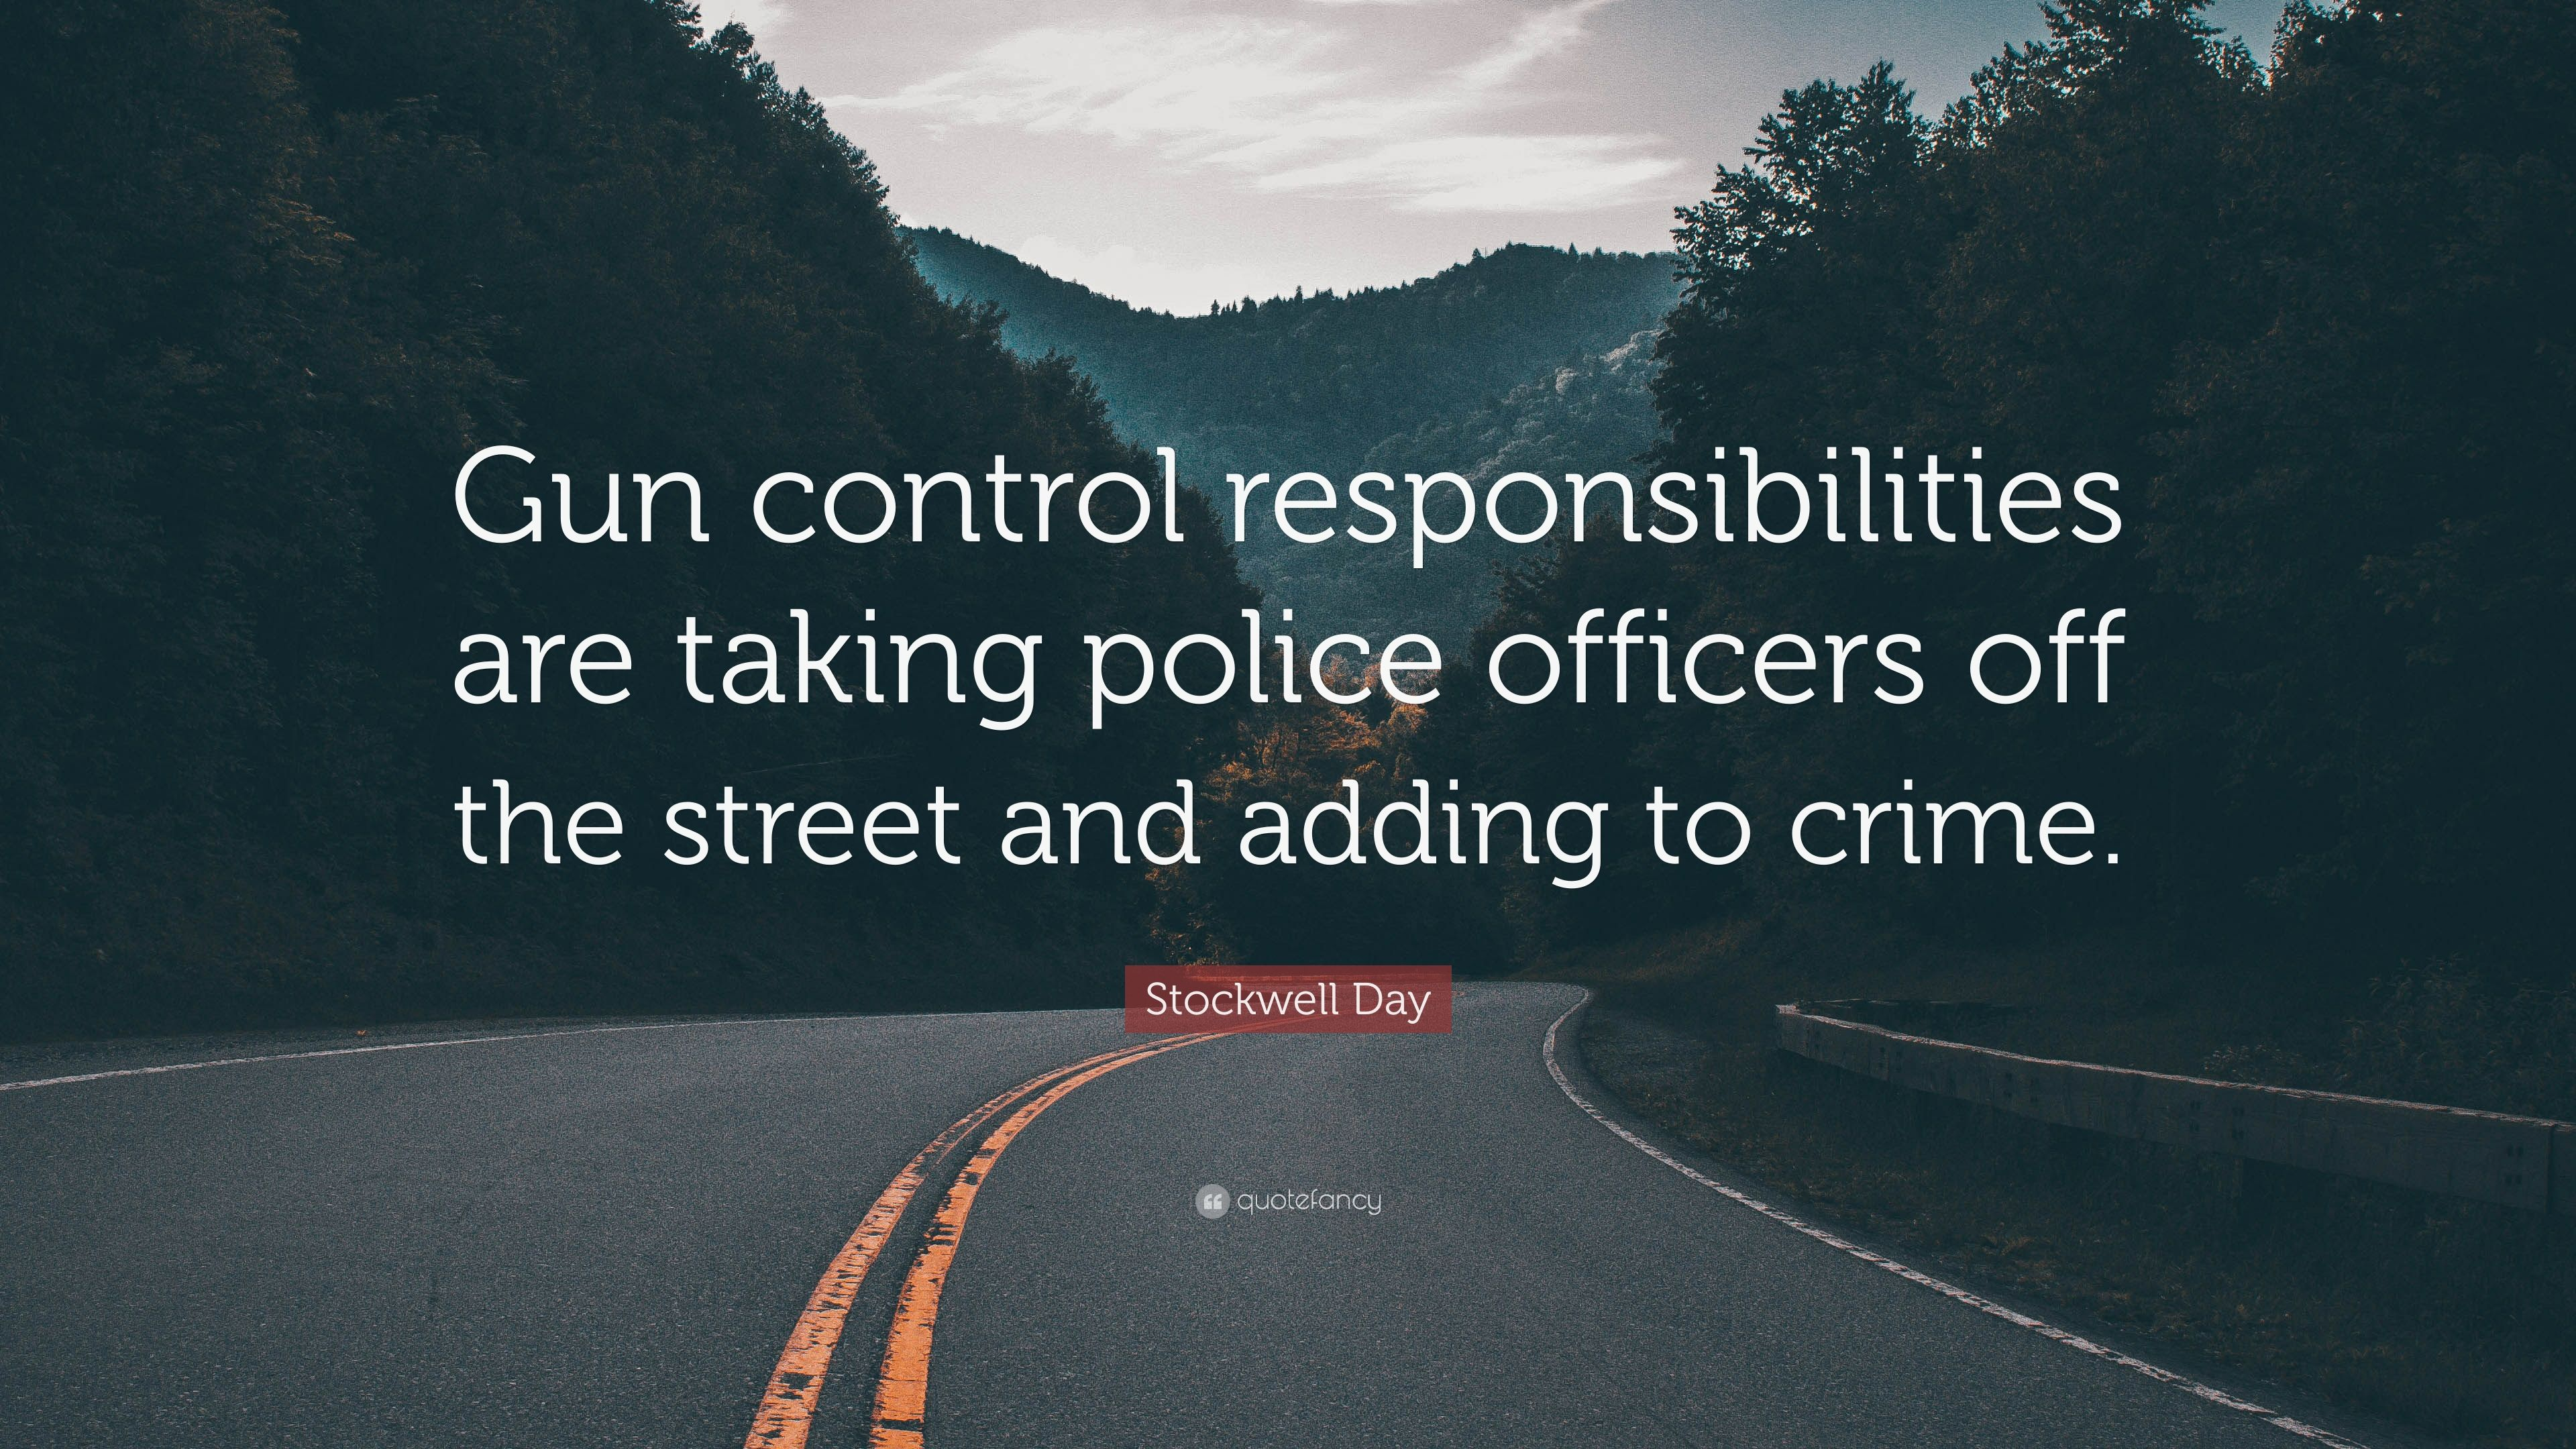 stockwell day quote gun control responsibilities are taking police officers off the street and